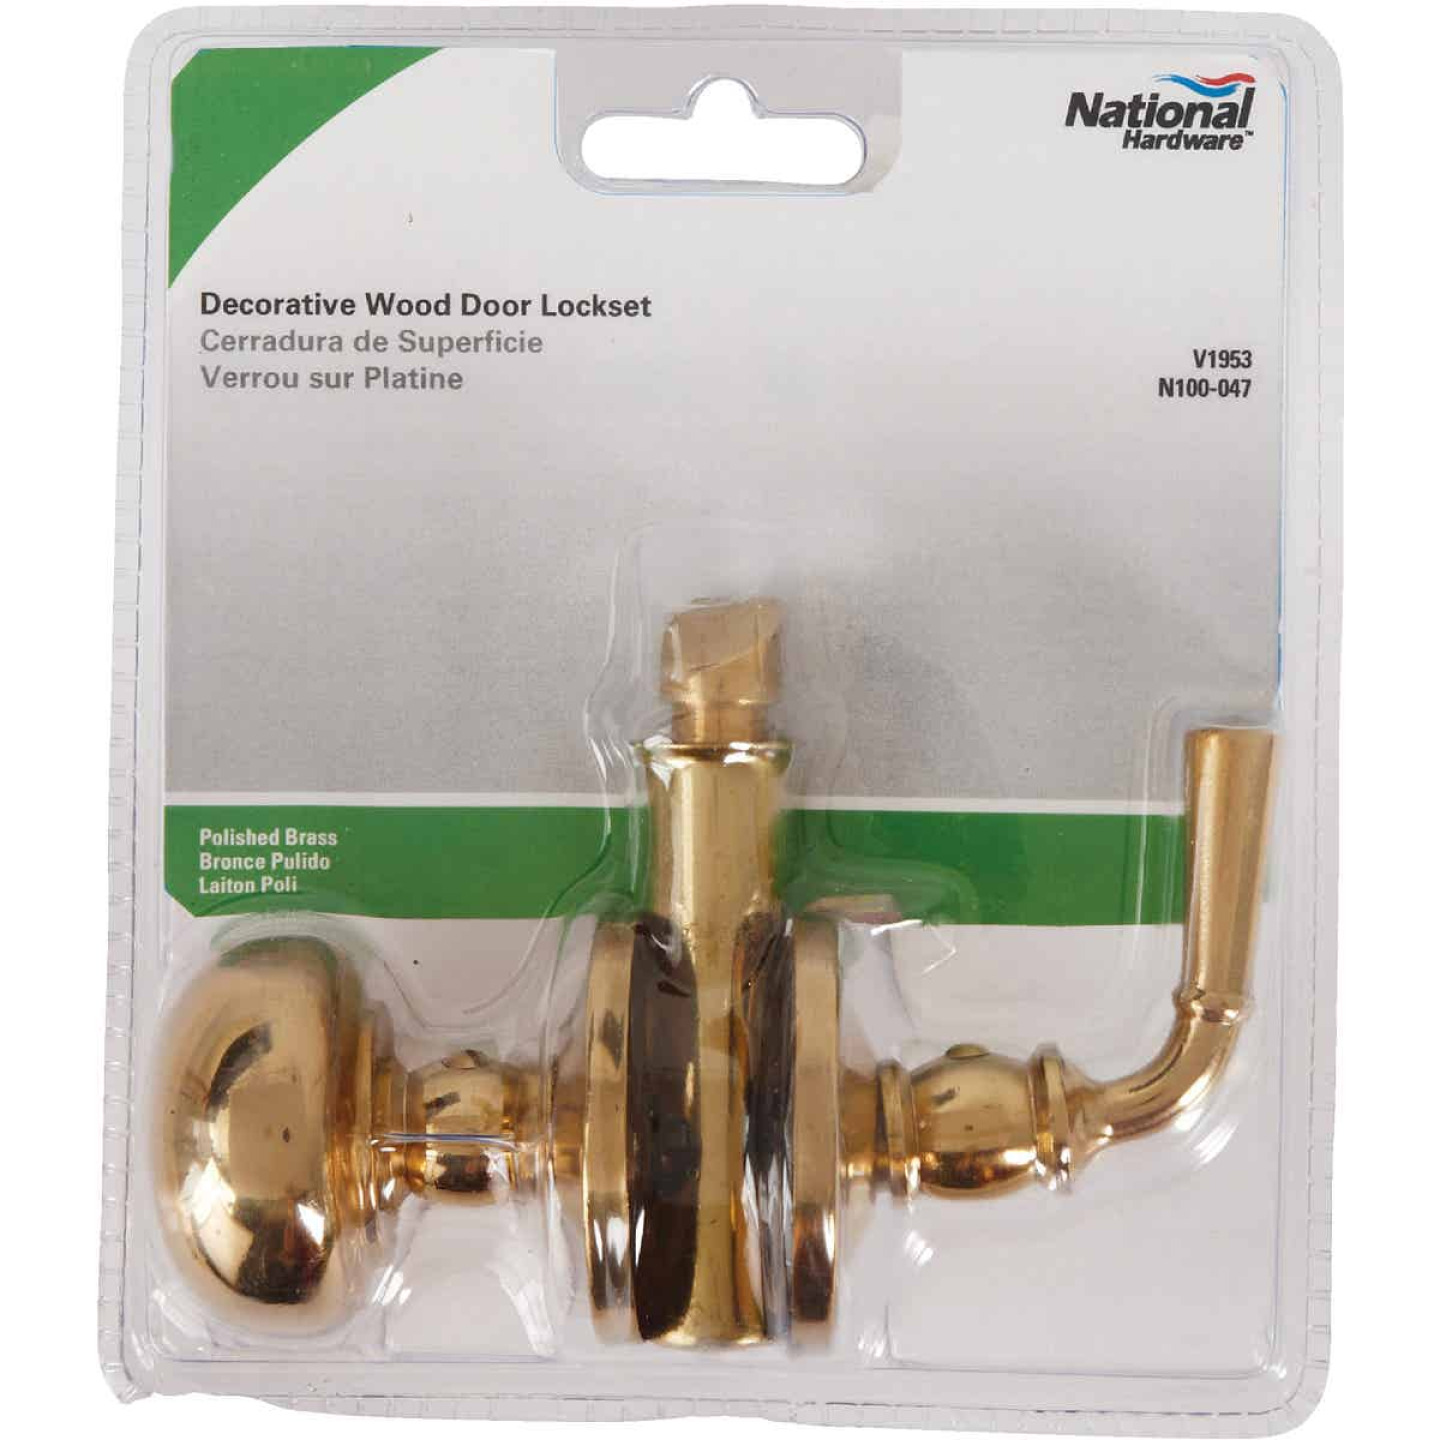 National Polished Brass Storm Door Knob Latch Image 2